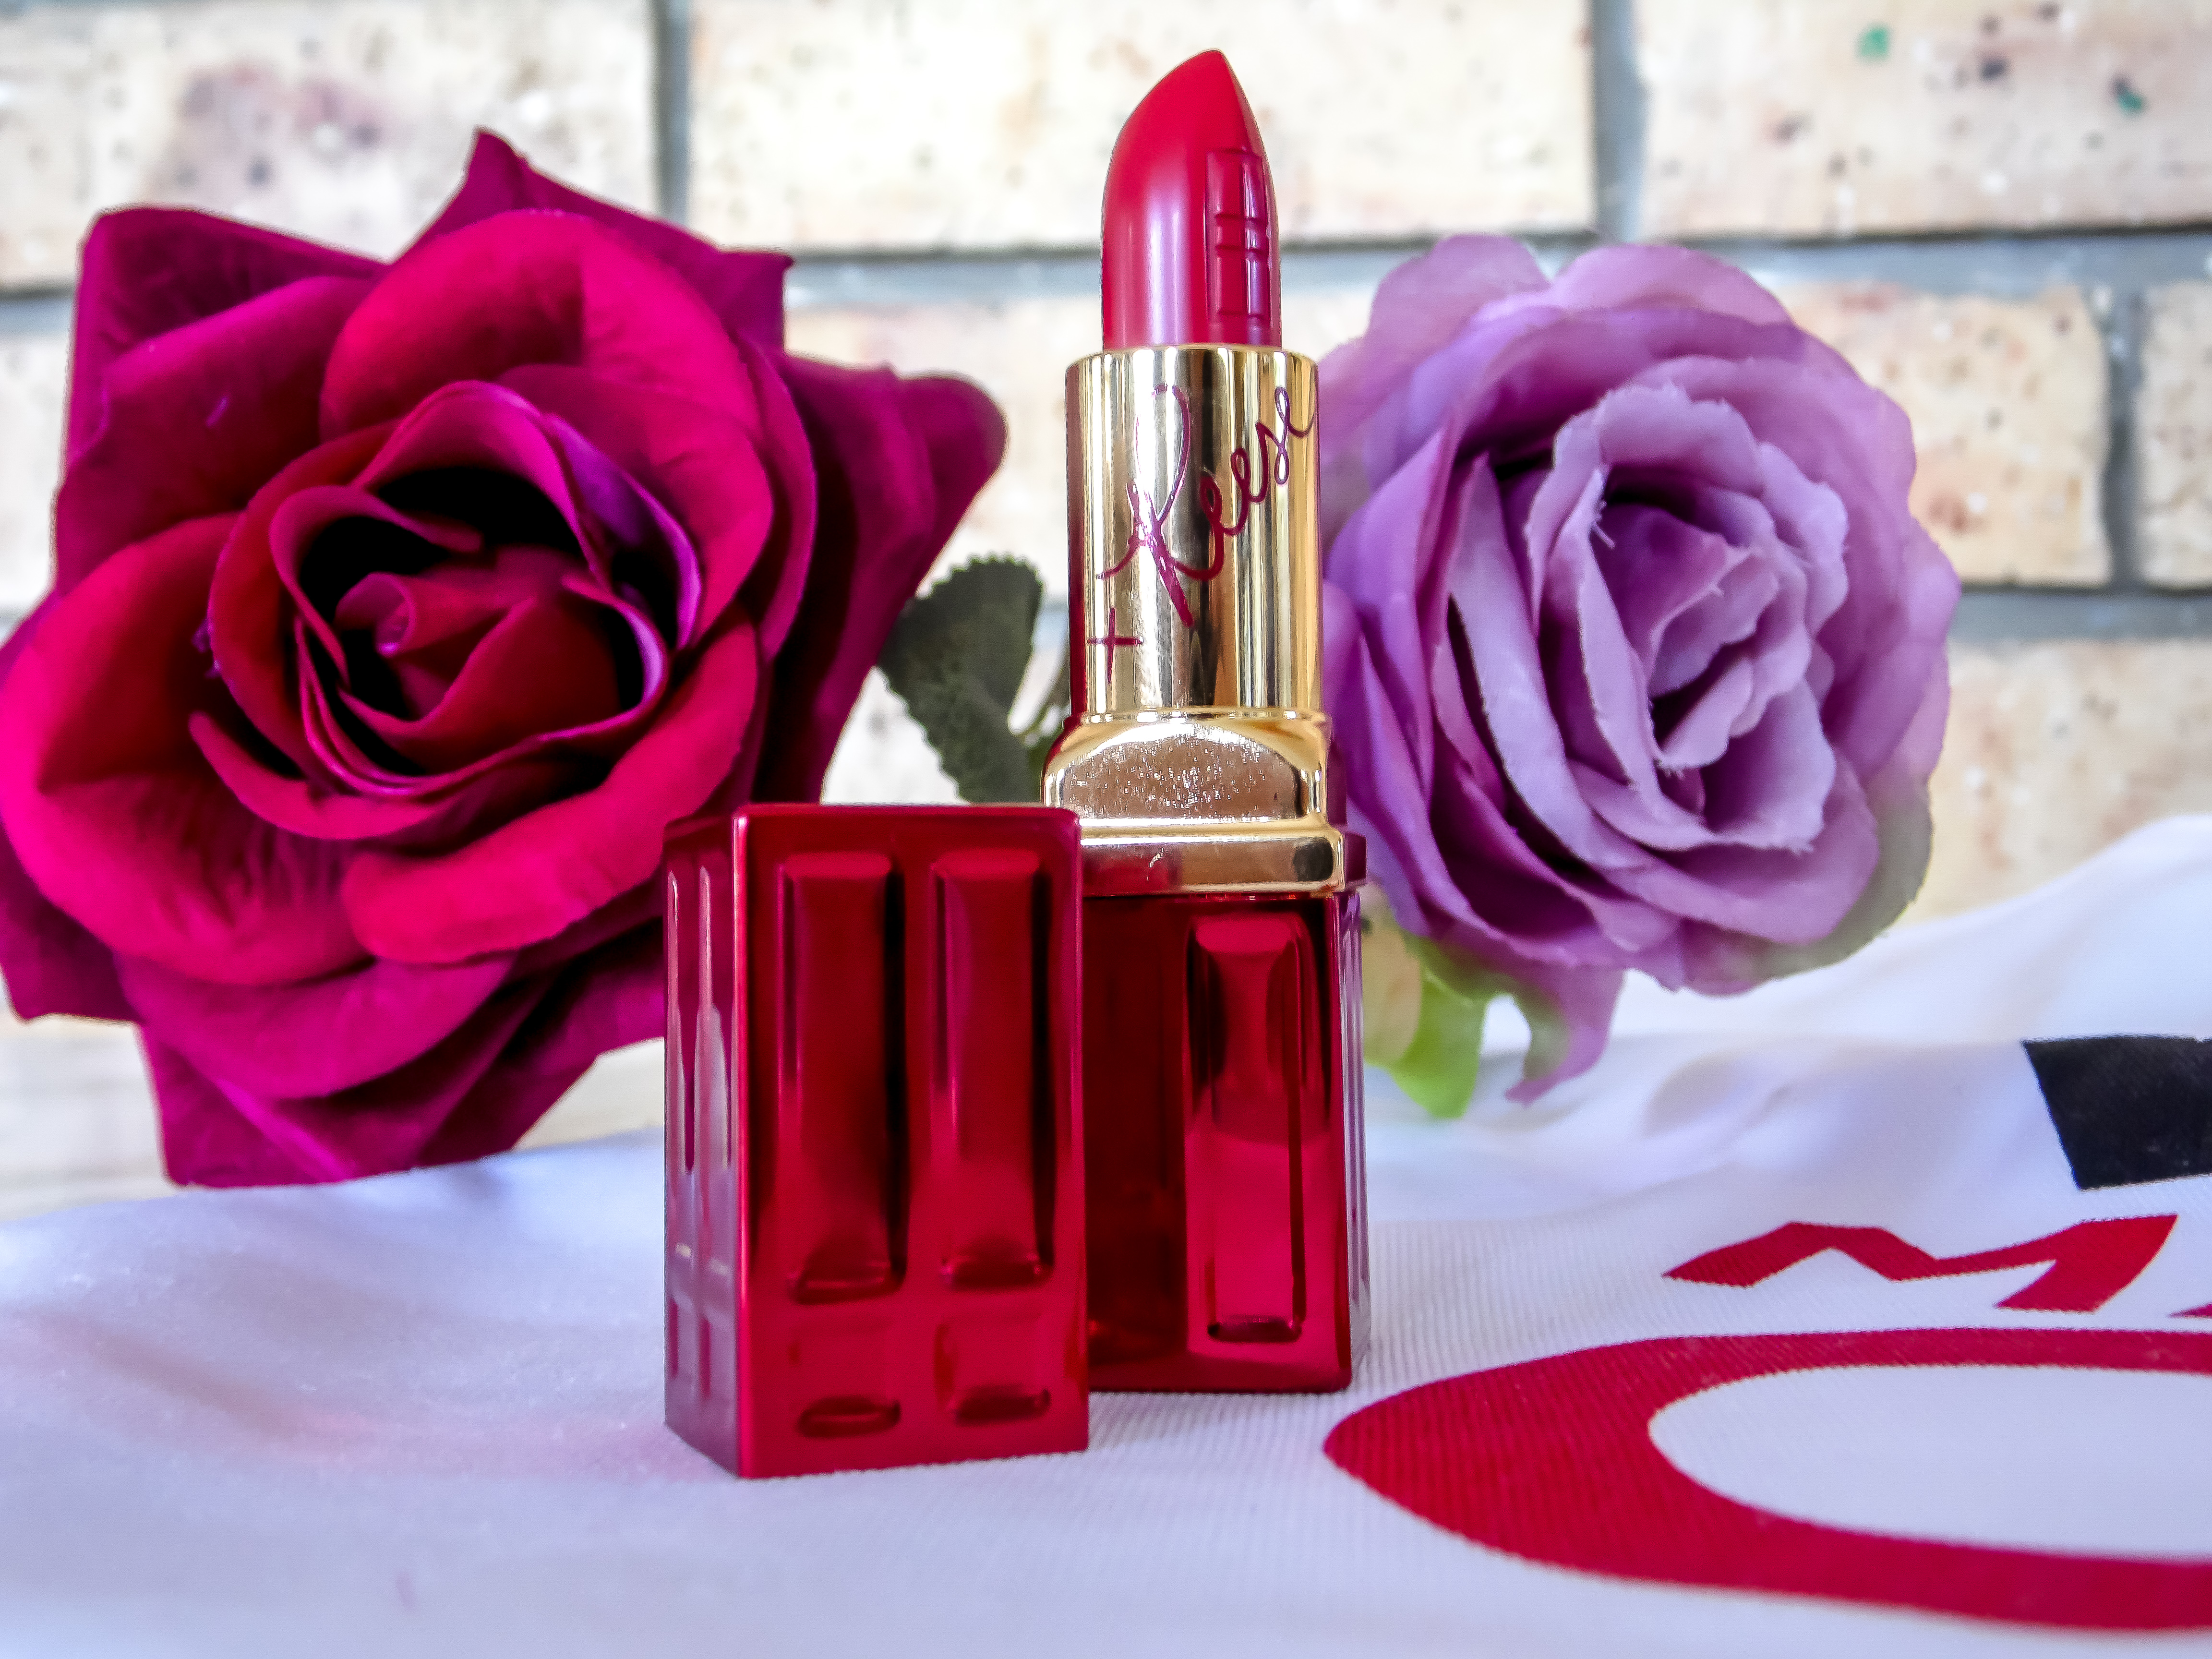 Elizabeth Arden March On Lipstick - By Megan Kelly